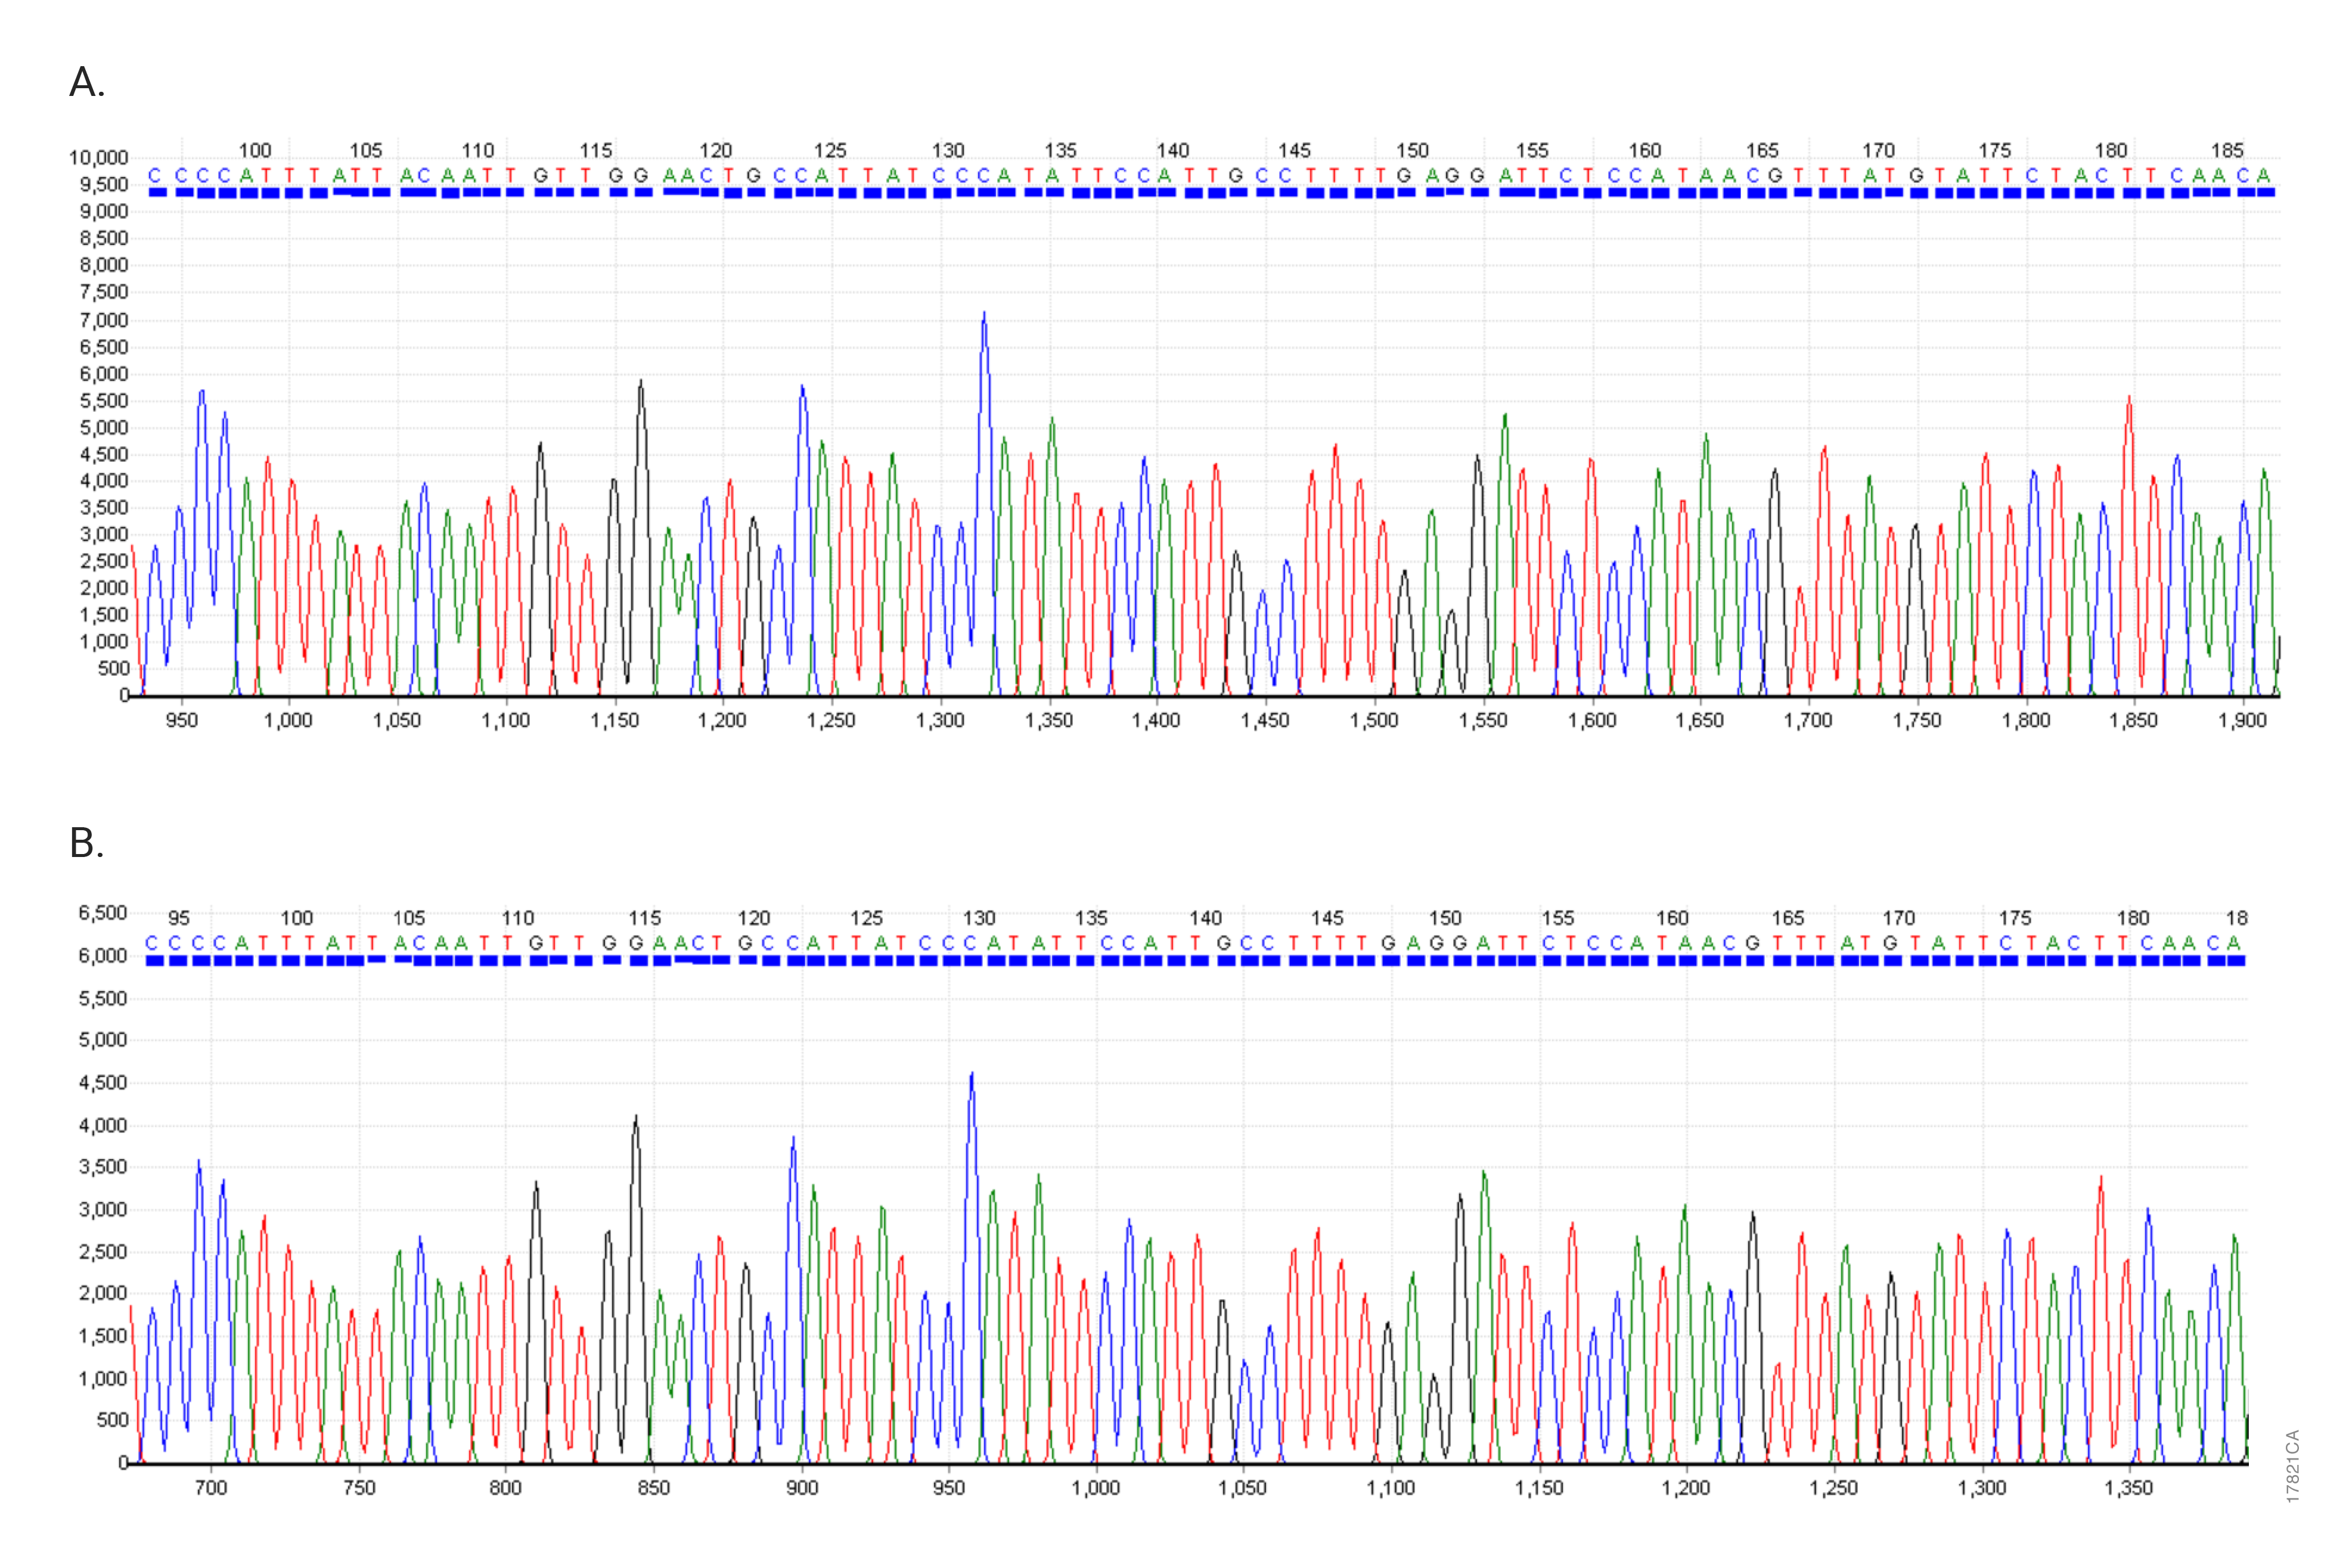 Example data using the ProDye™ Terminator Sequencing System to sequence plasmid DNA using the standard protocol.